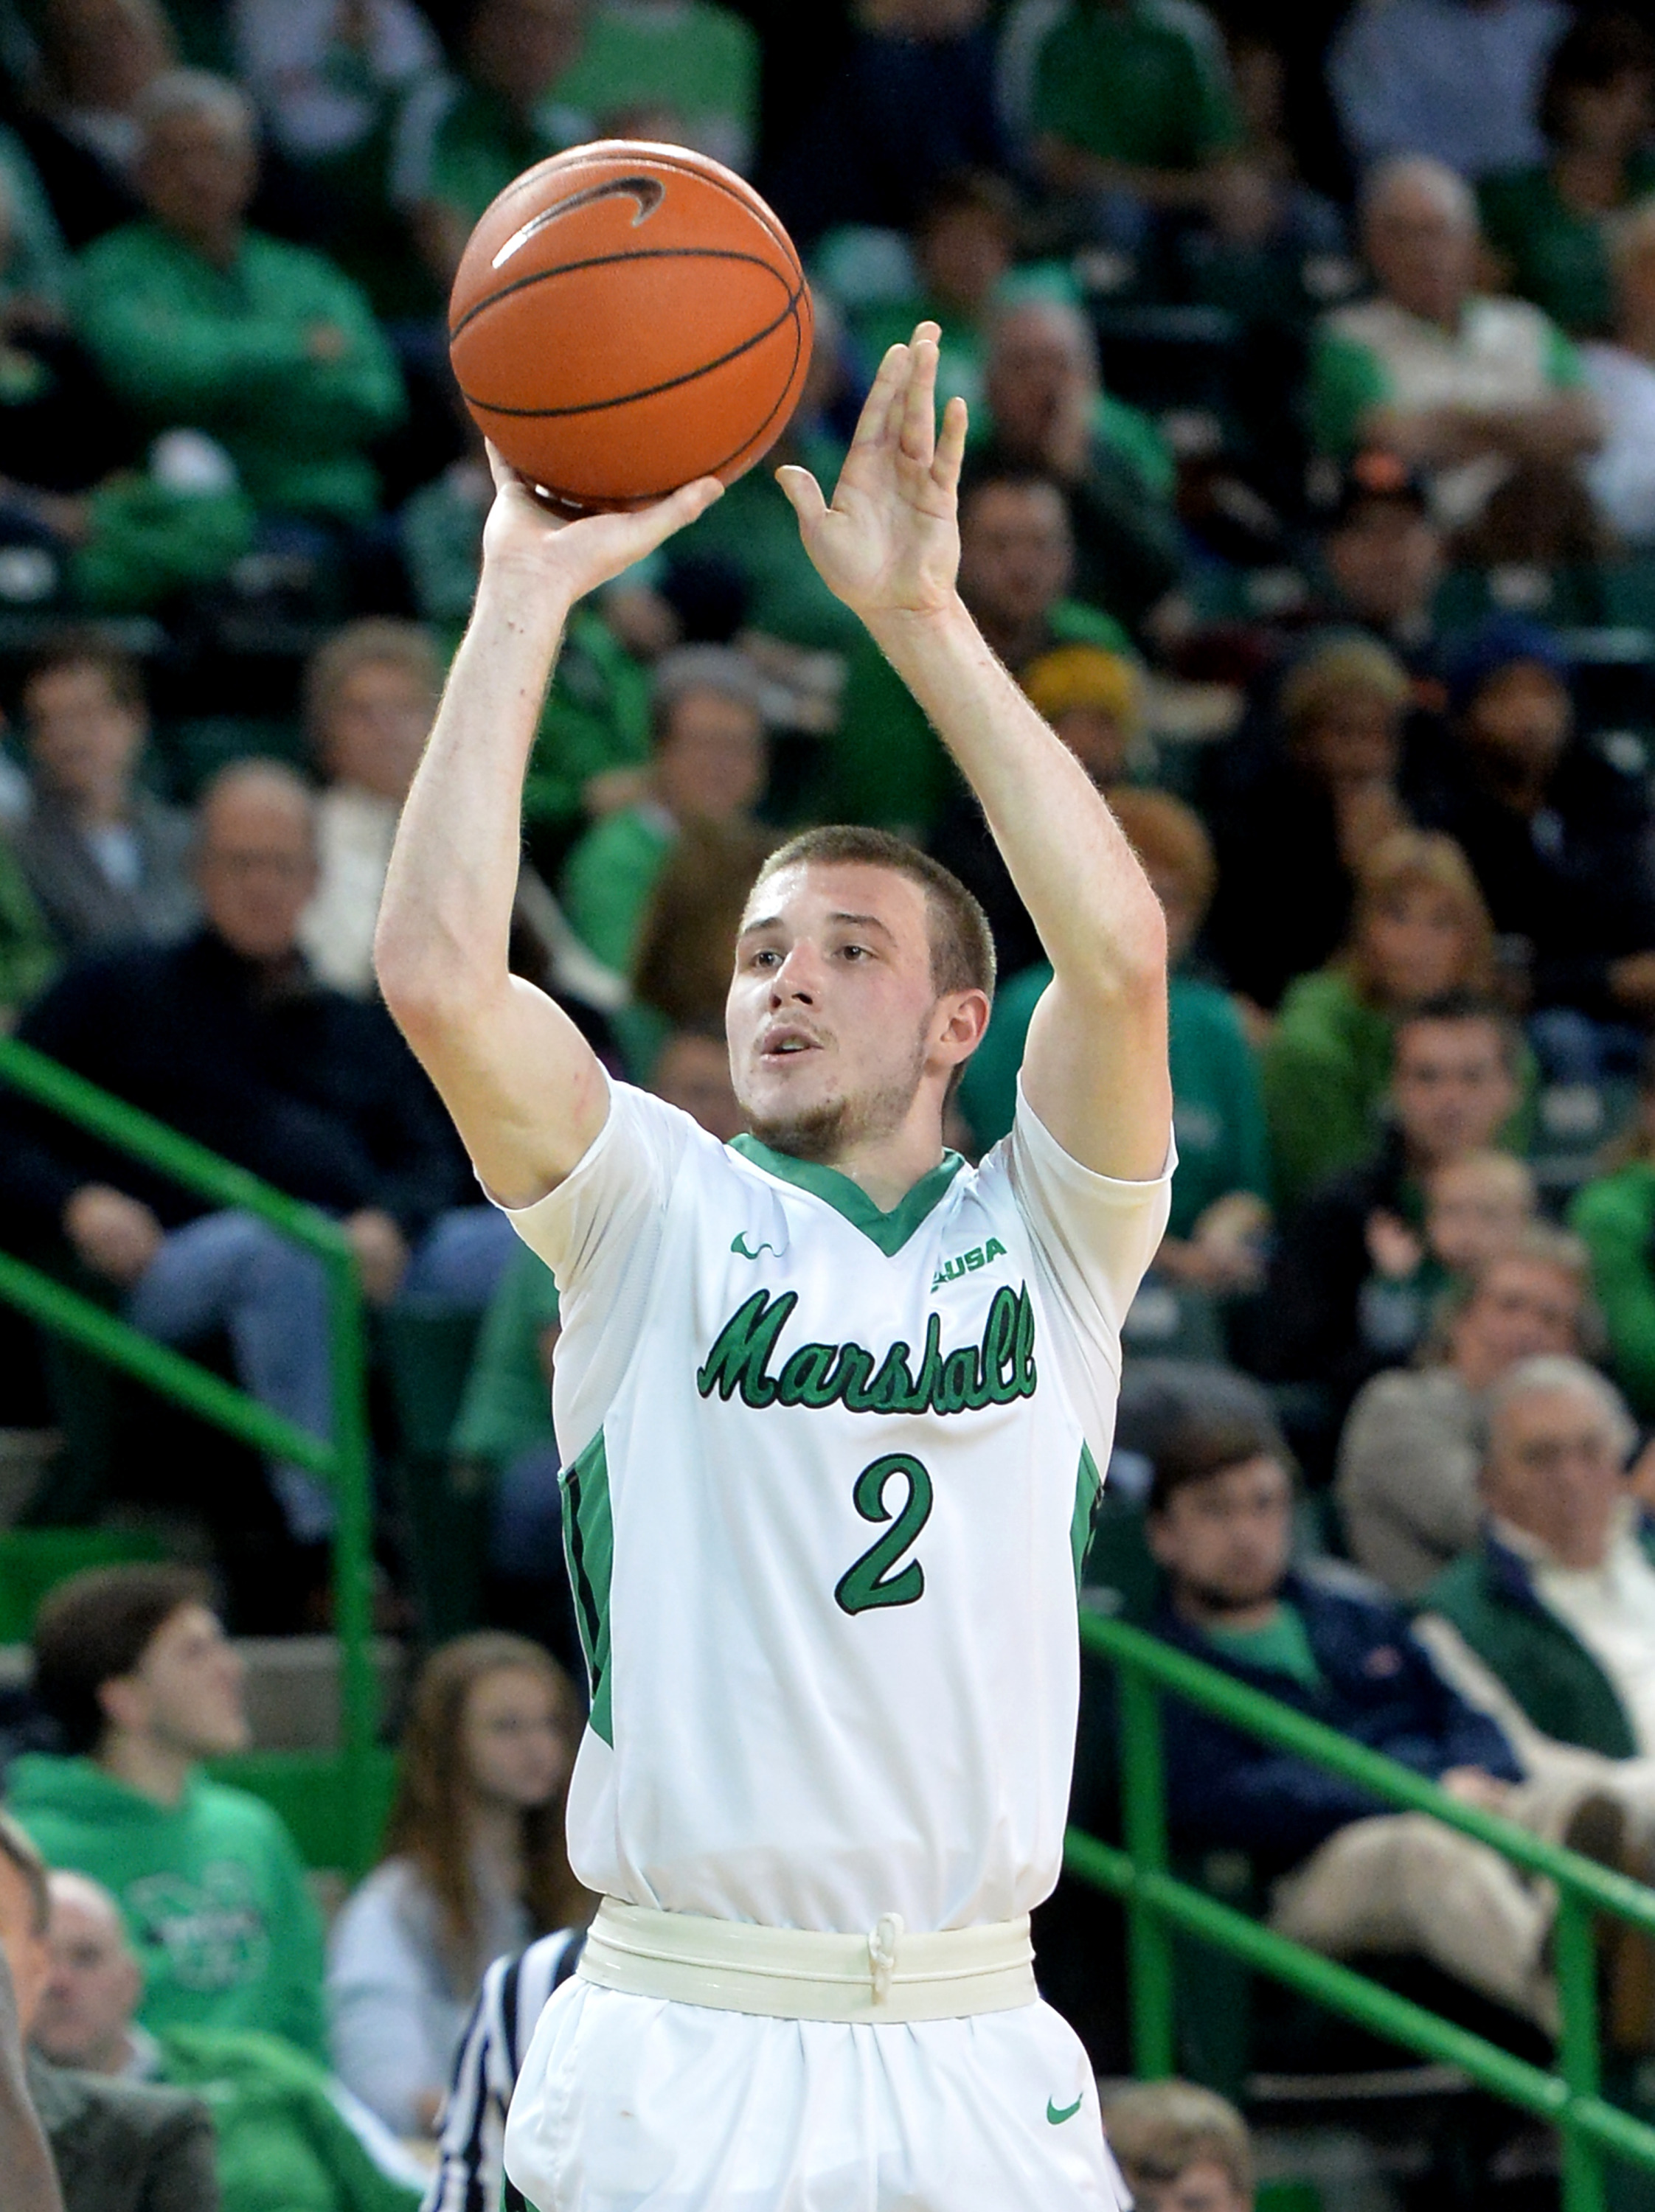 Browning led the Herd with 18 points, eight rebounds and six assists.